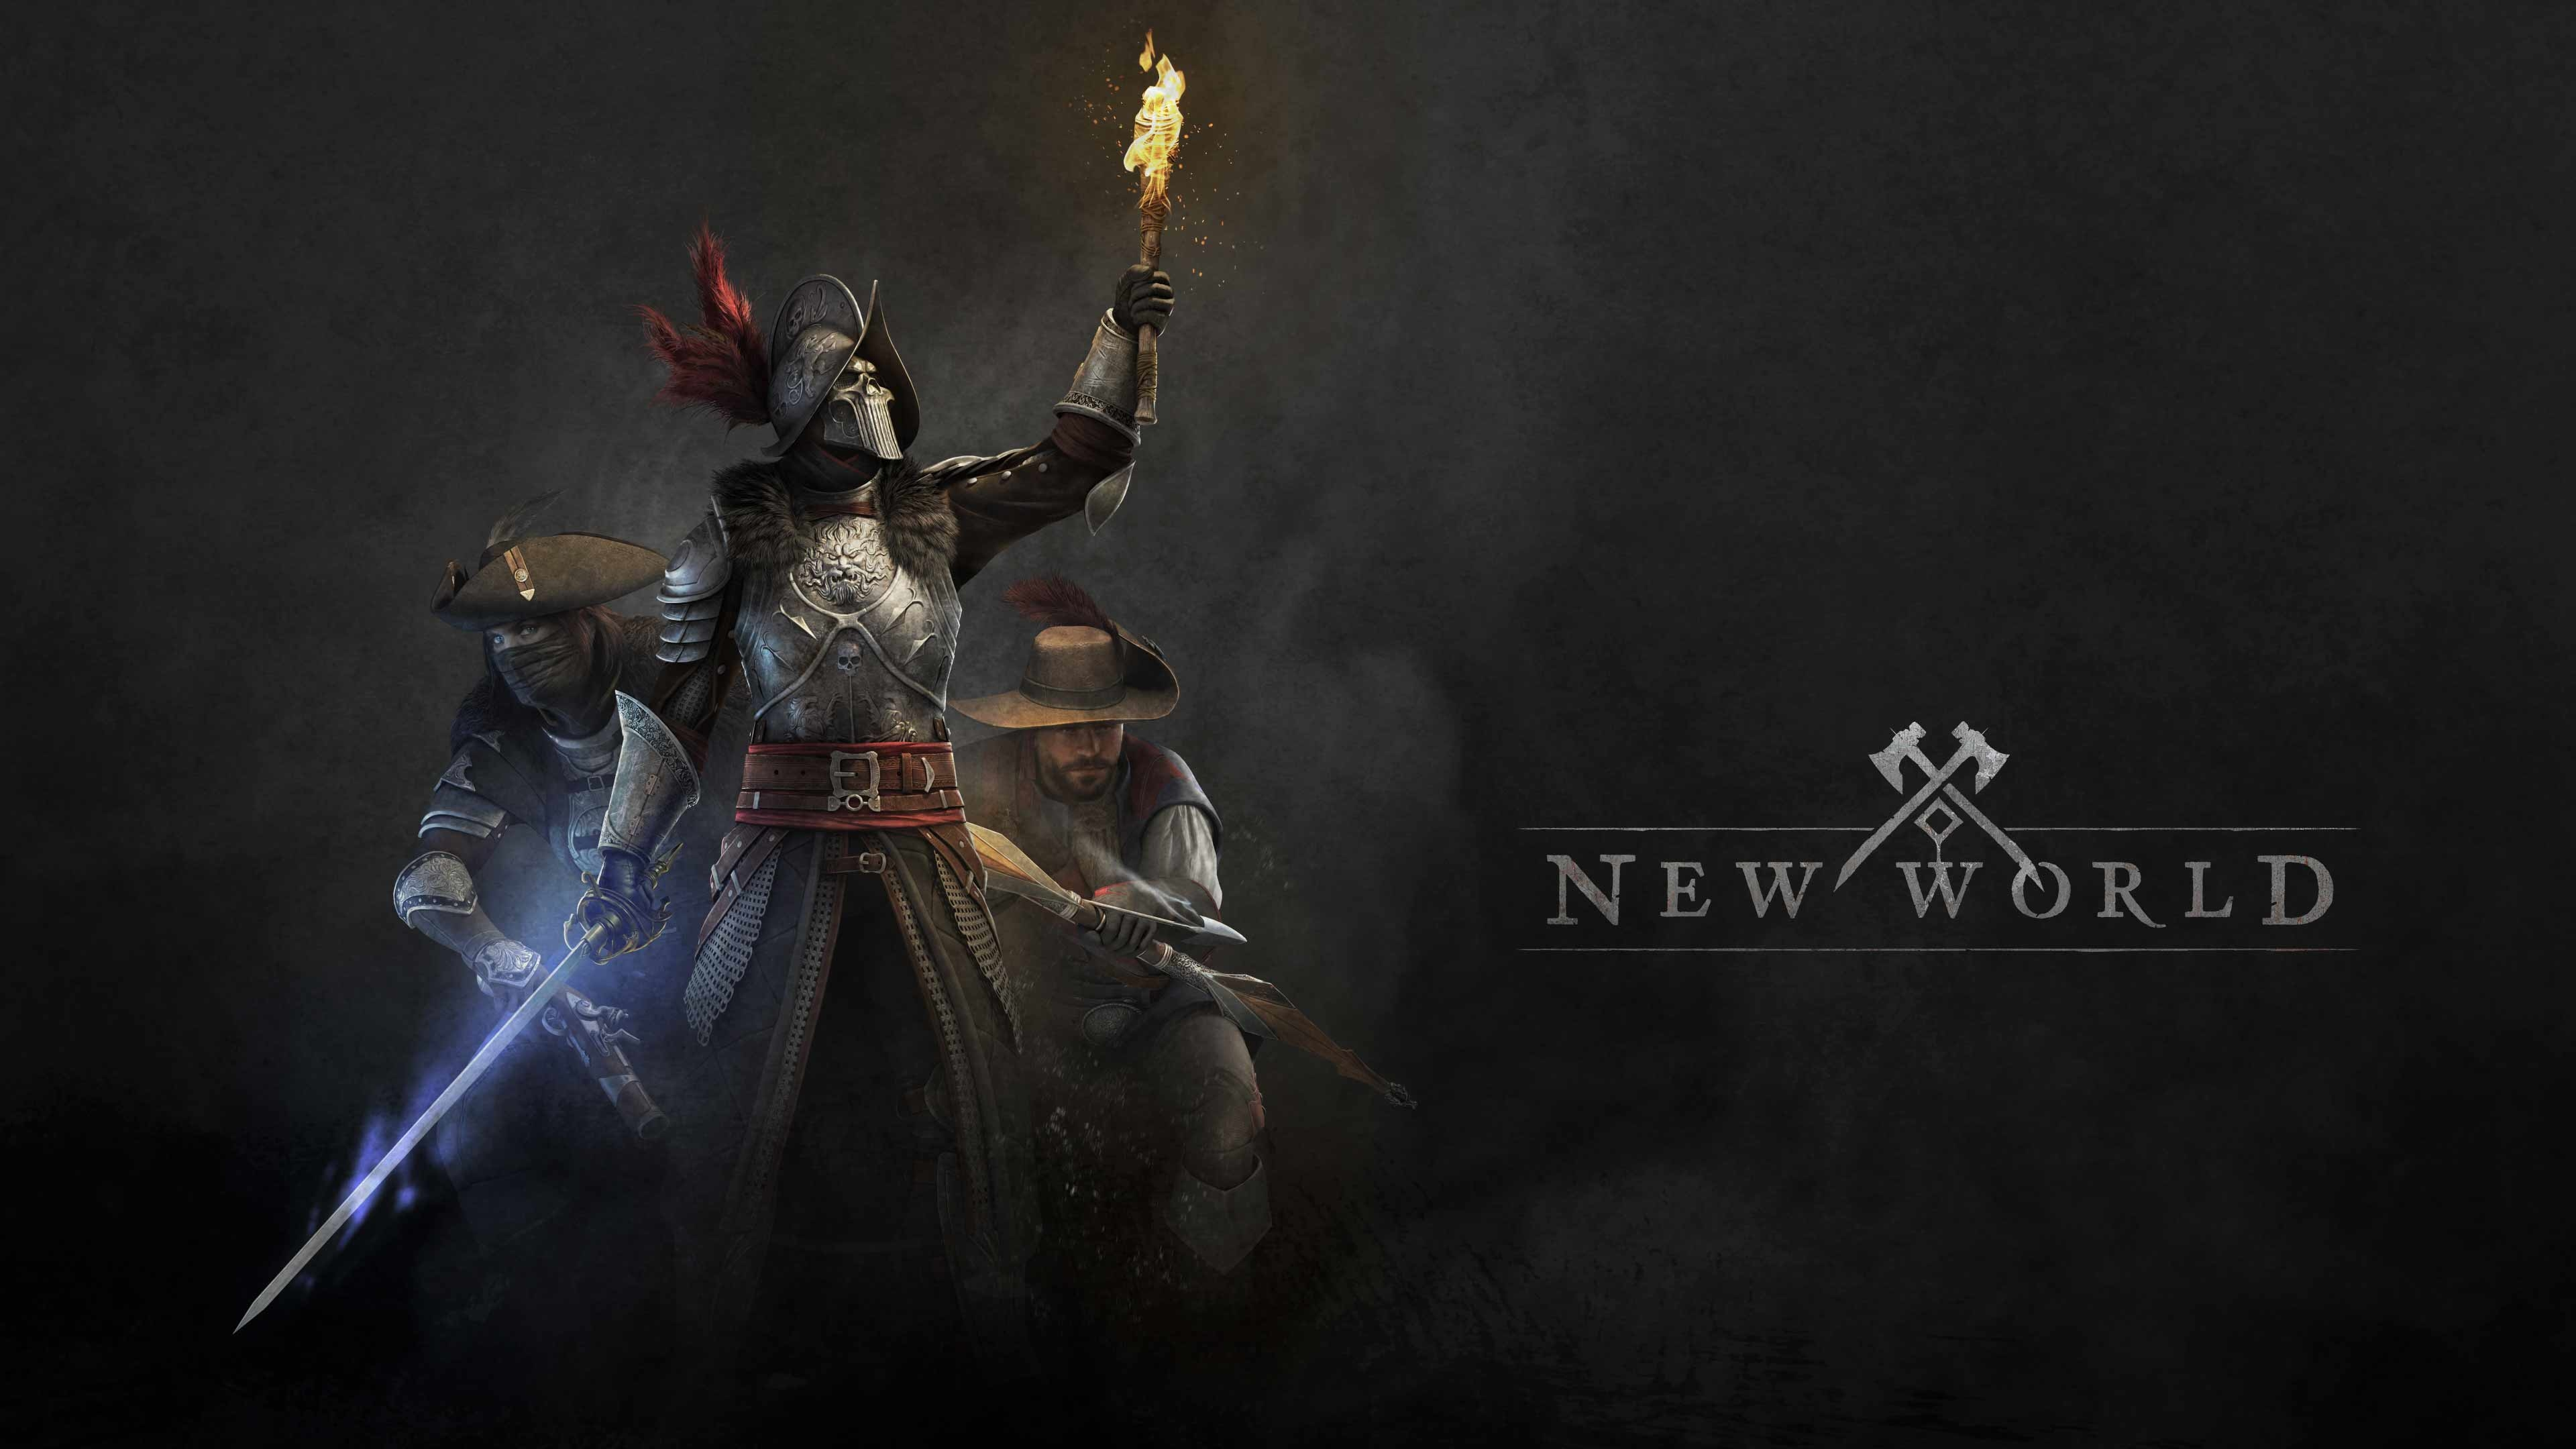 Amazon New World Wallpaper Hd Games 4k Wallpapers Images Photos